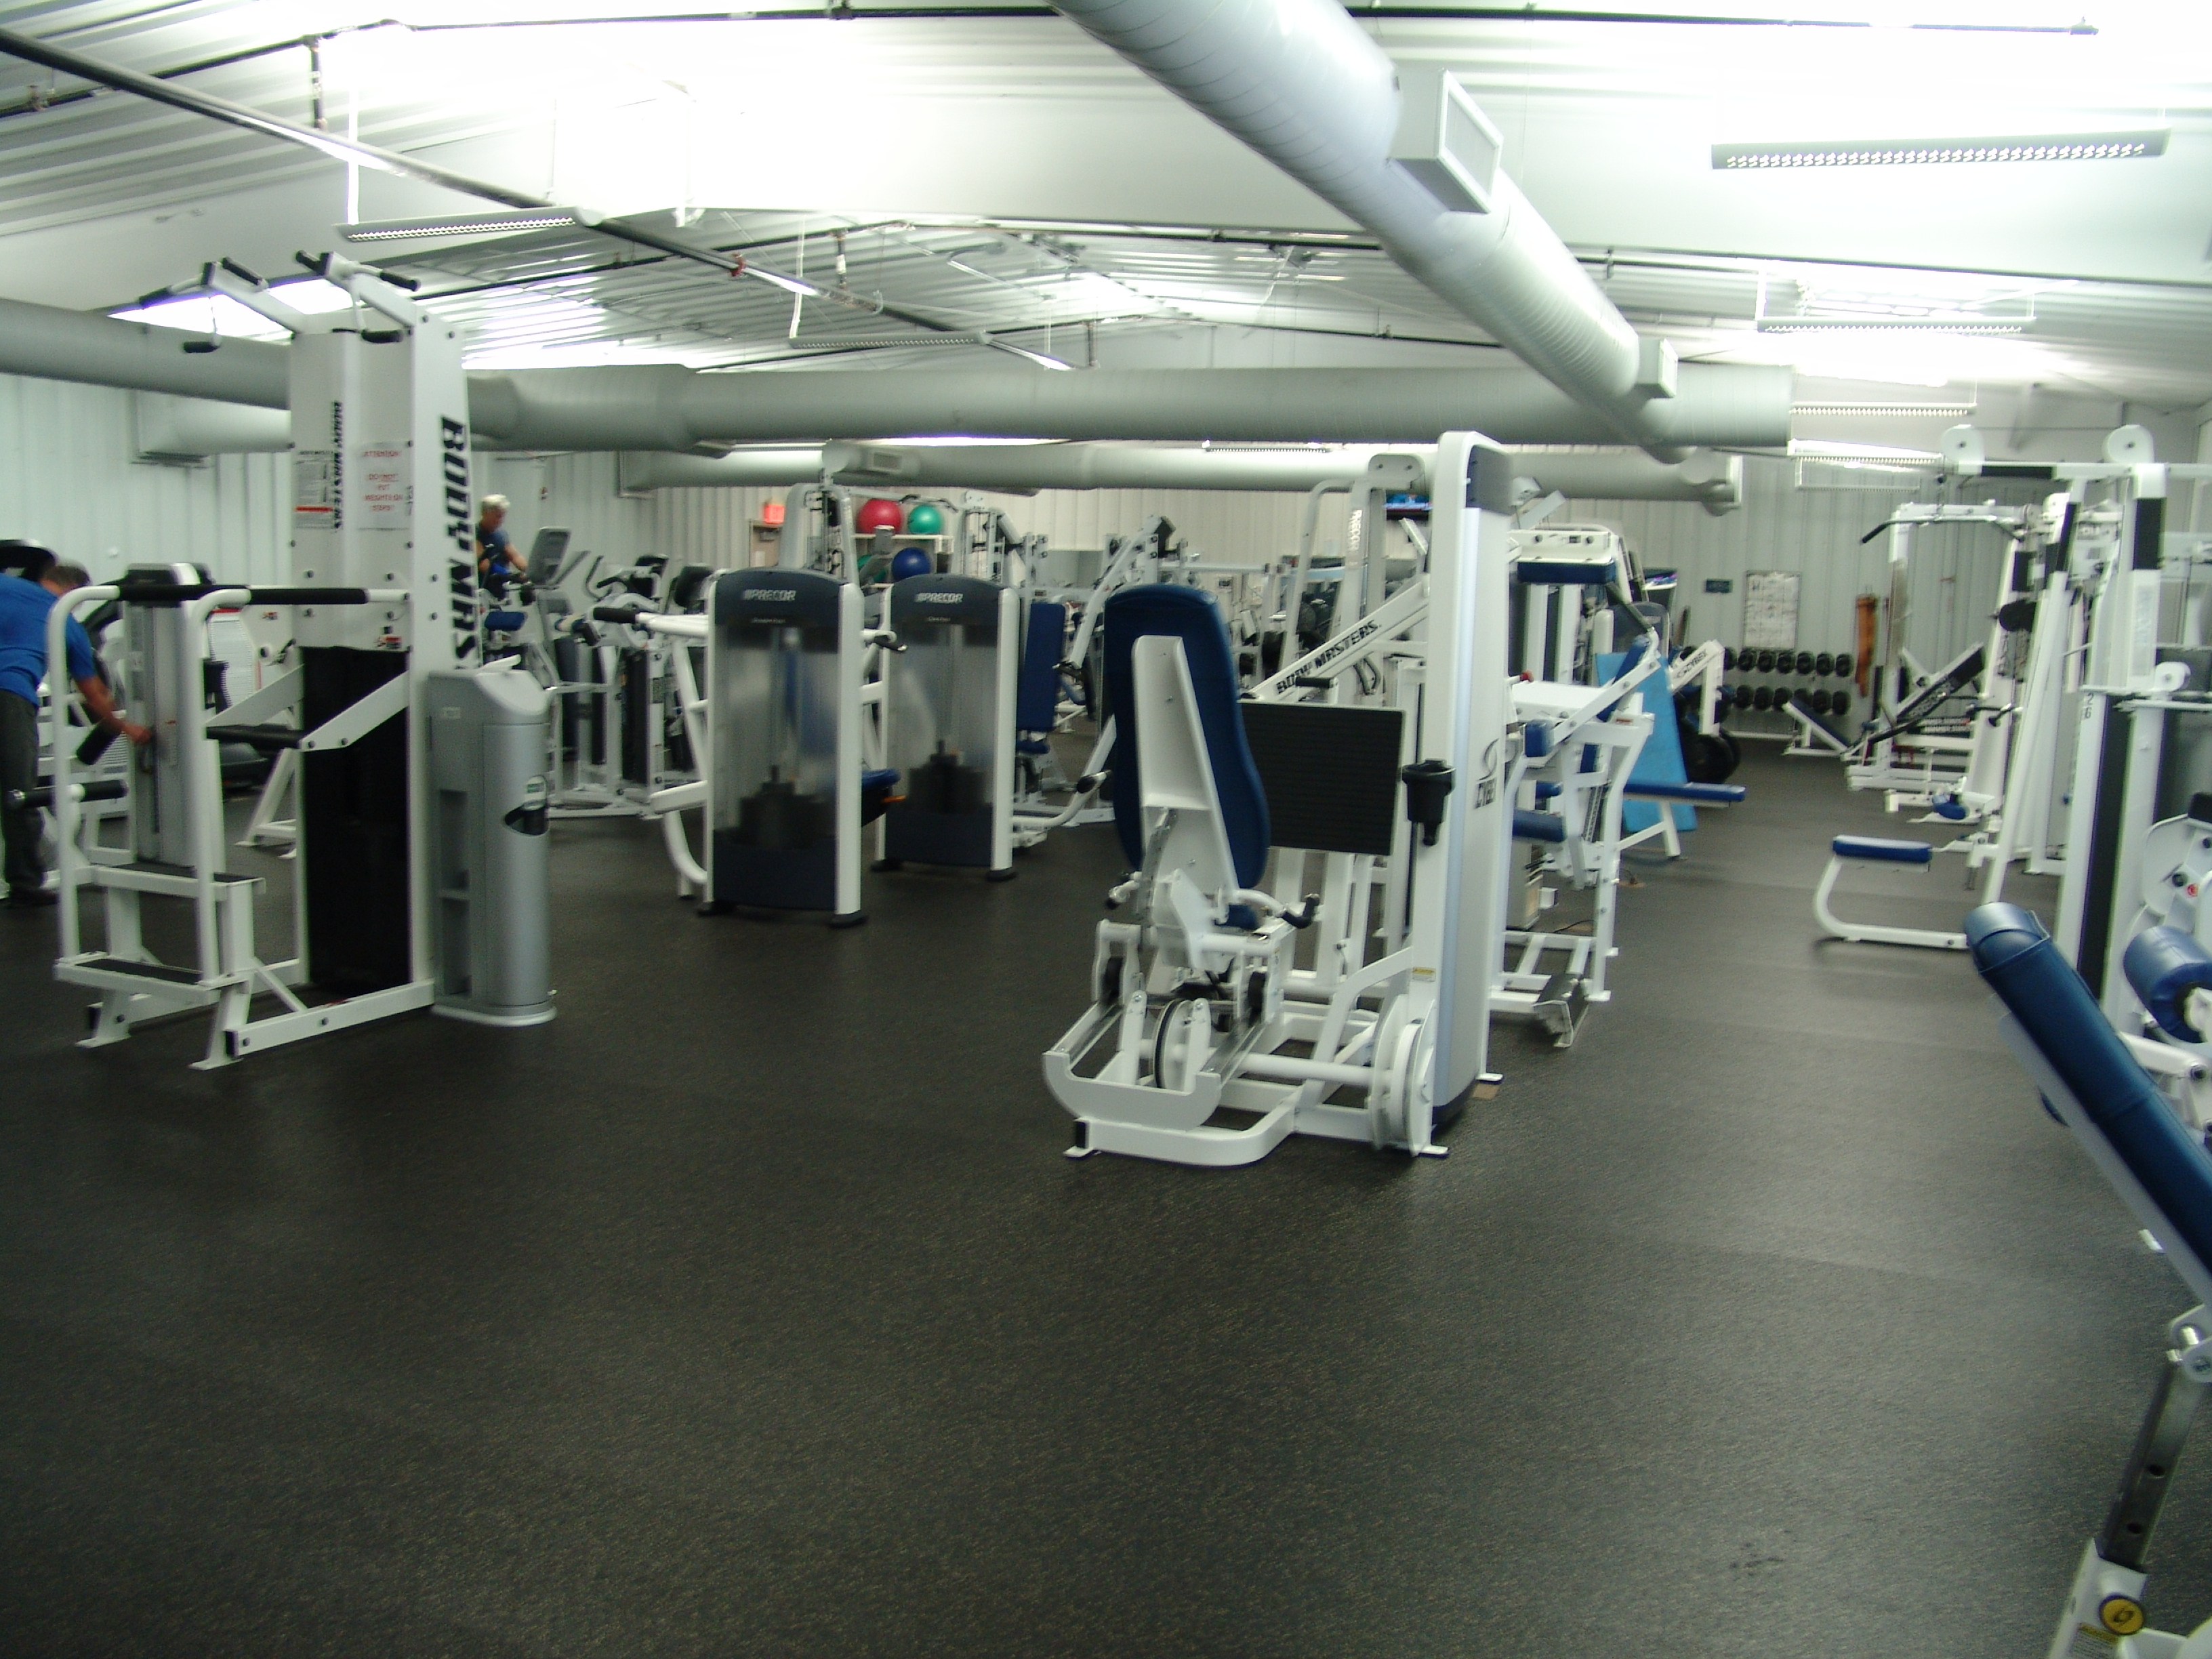 Cannon afb gym anotherhackedlife